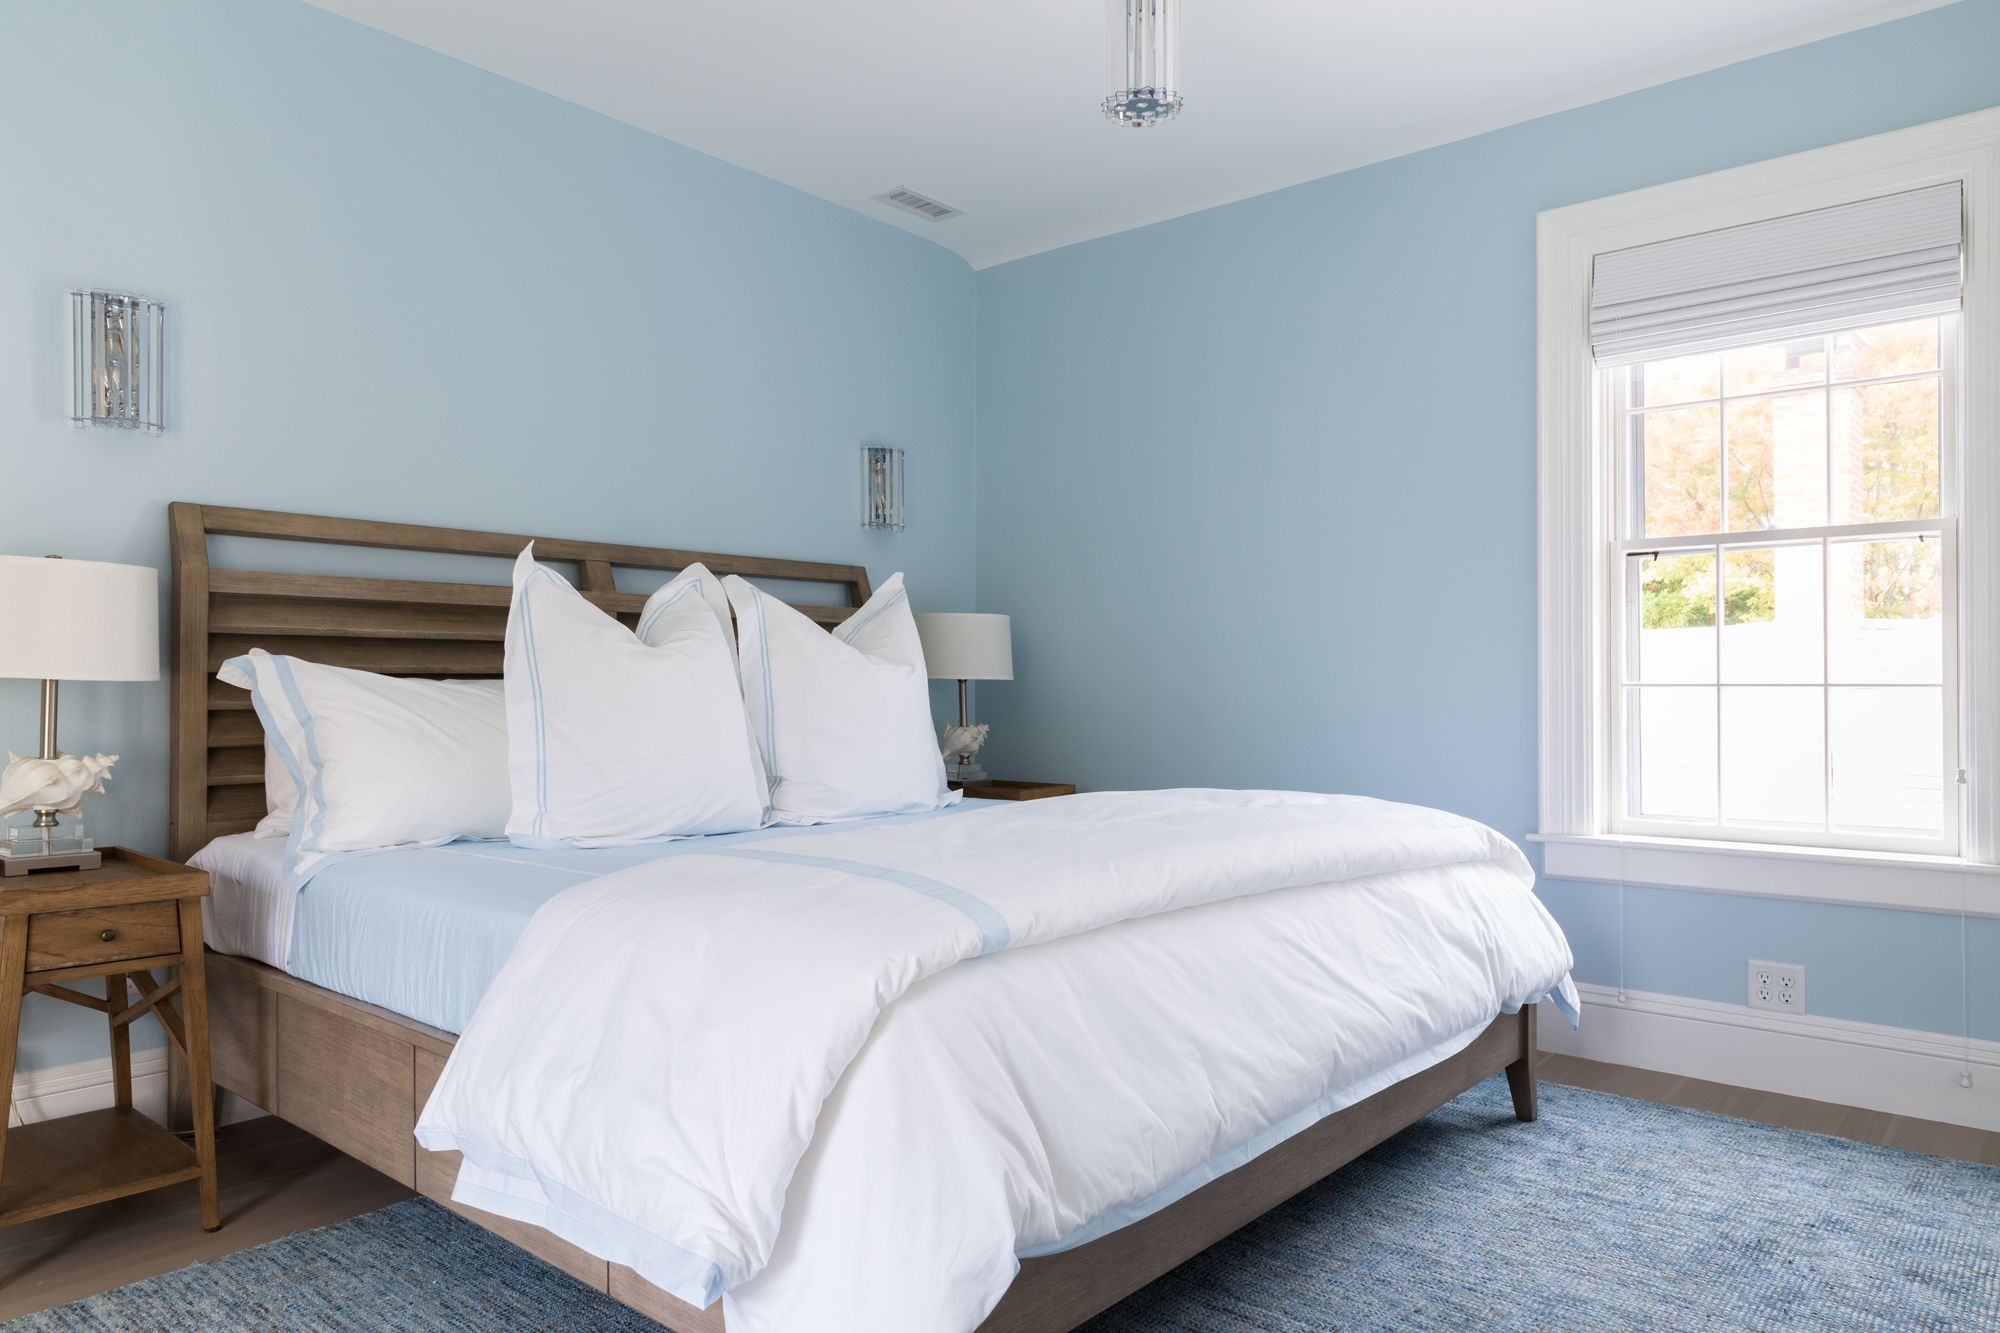 Best Liberty Tides Nantucket Bedroom Baby Blue Walls And White 640 x 480